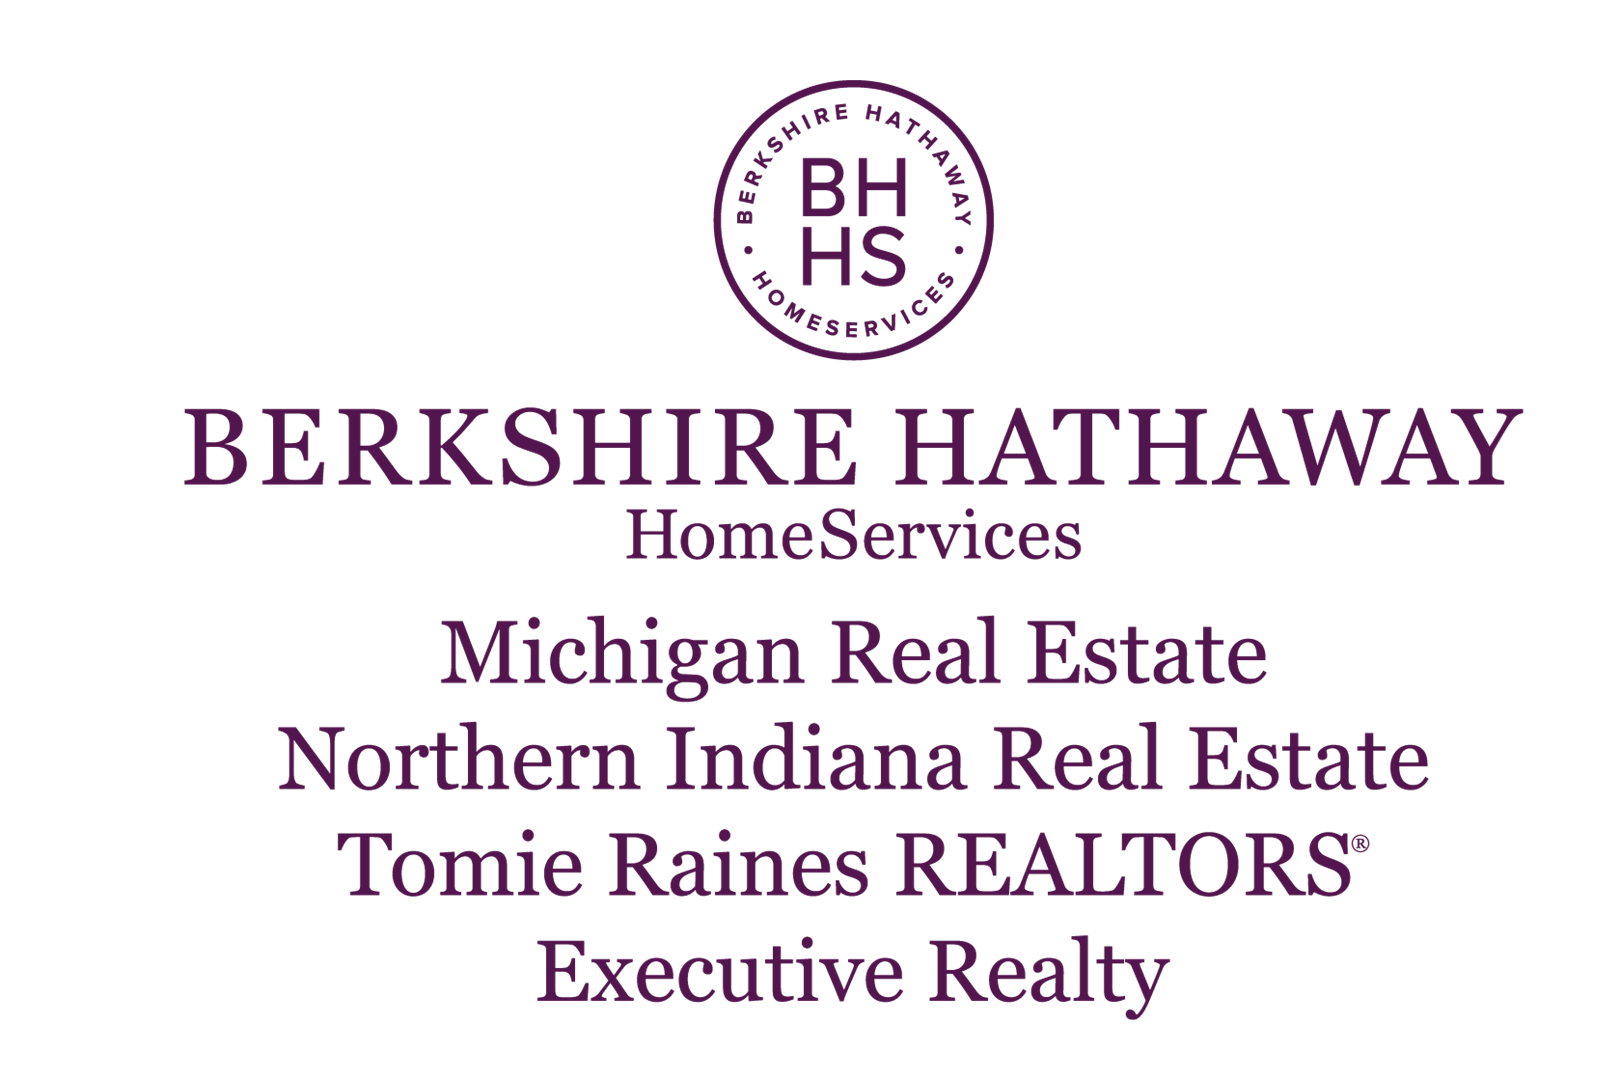 Berkshire Hathaway HomeServices Executive Realty